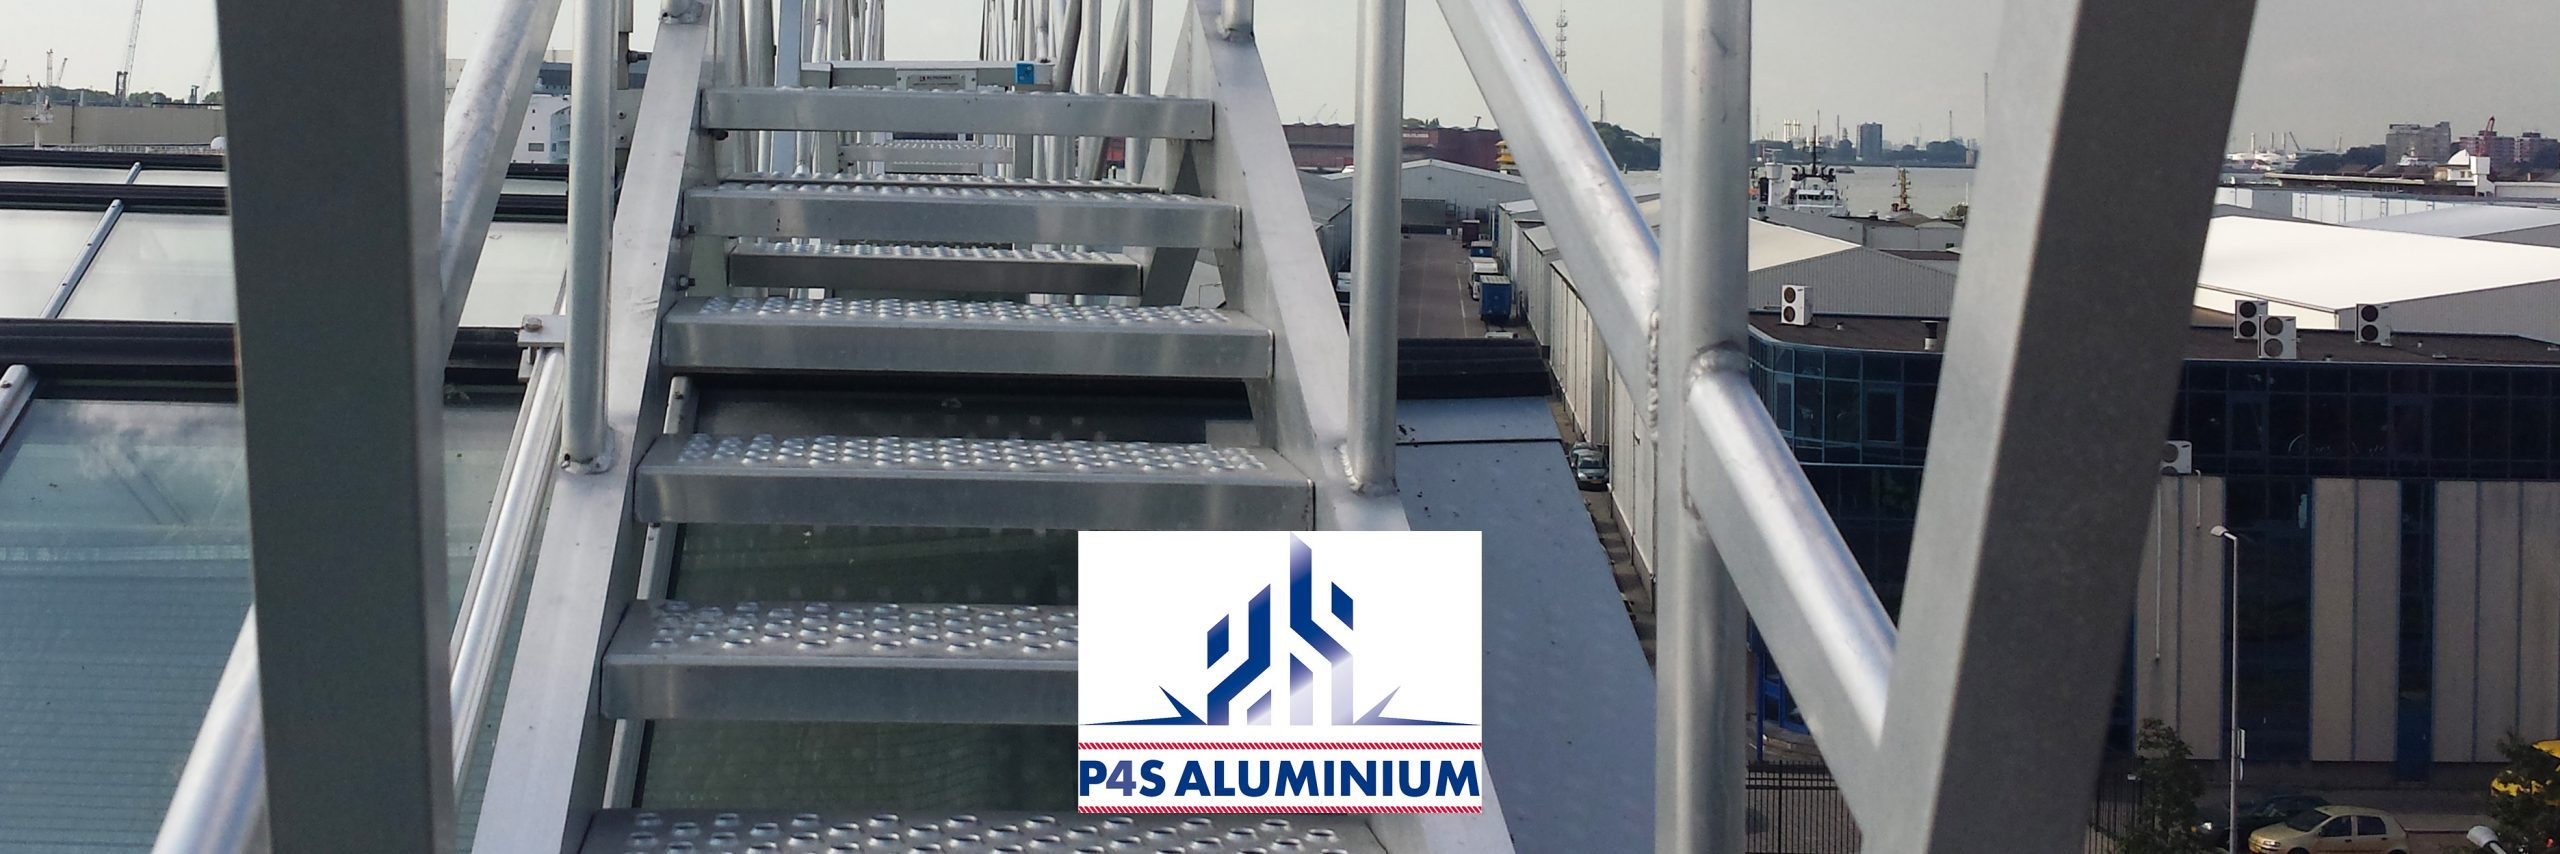 P4S Aluminium Glass Washing installation roof